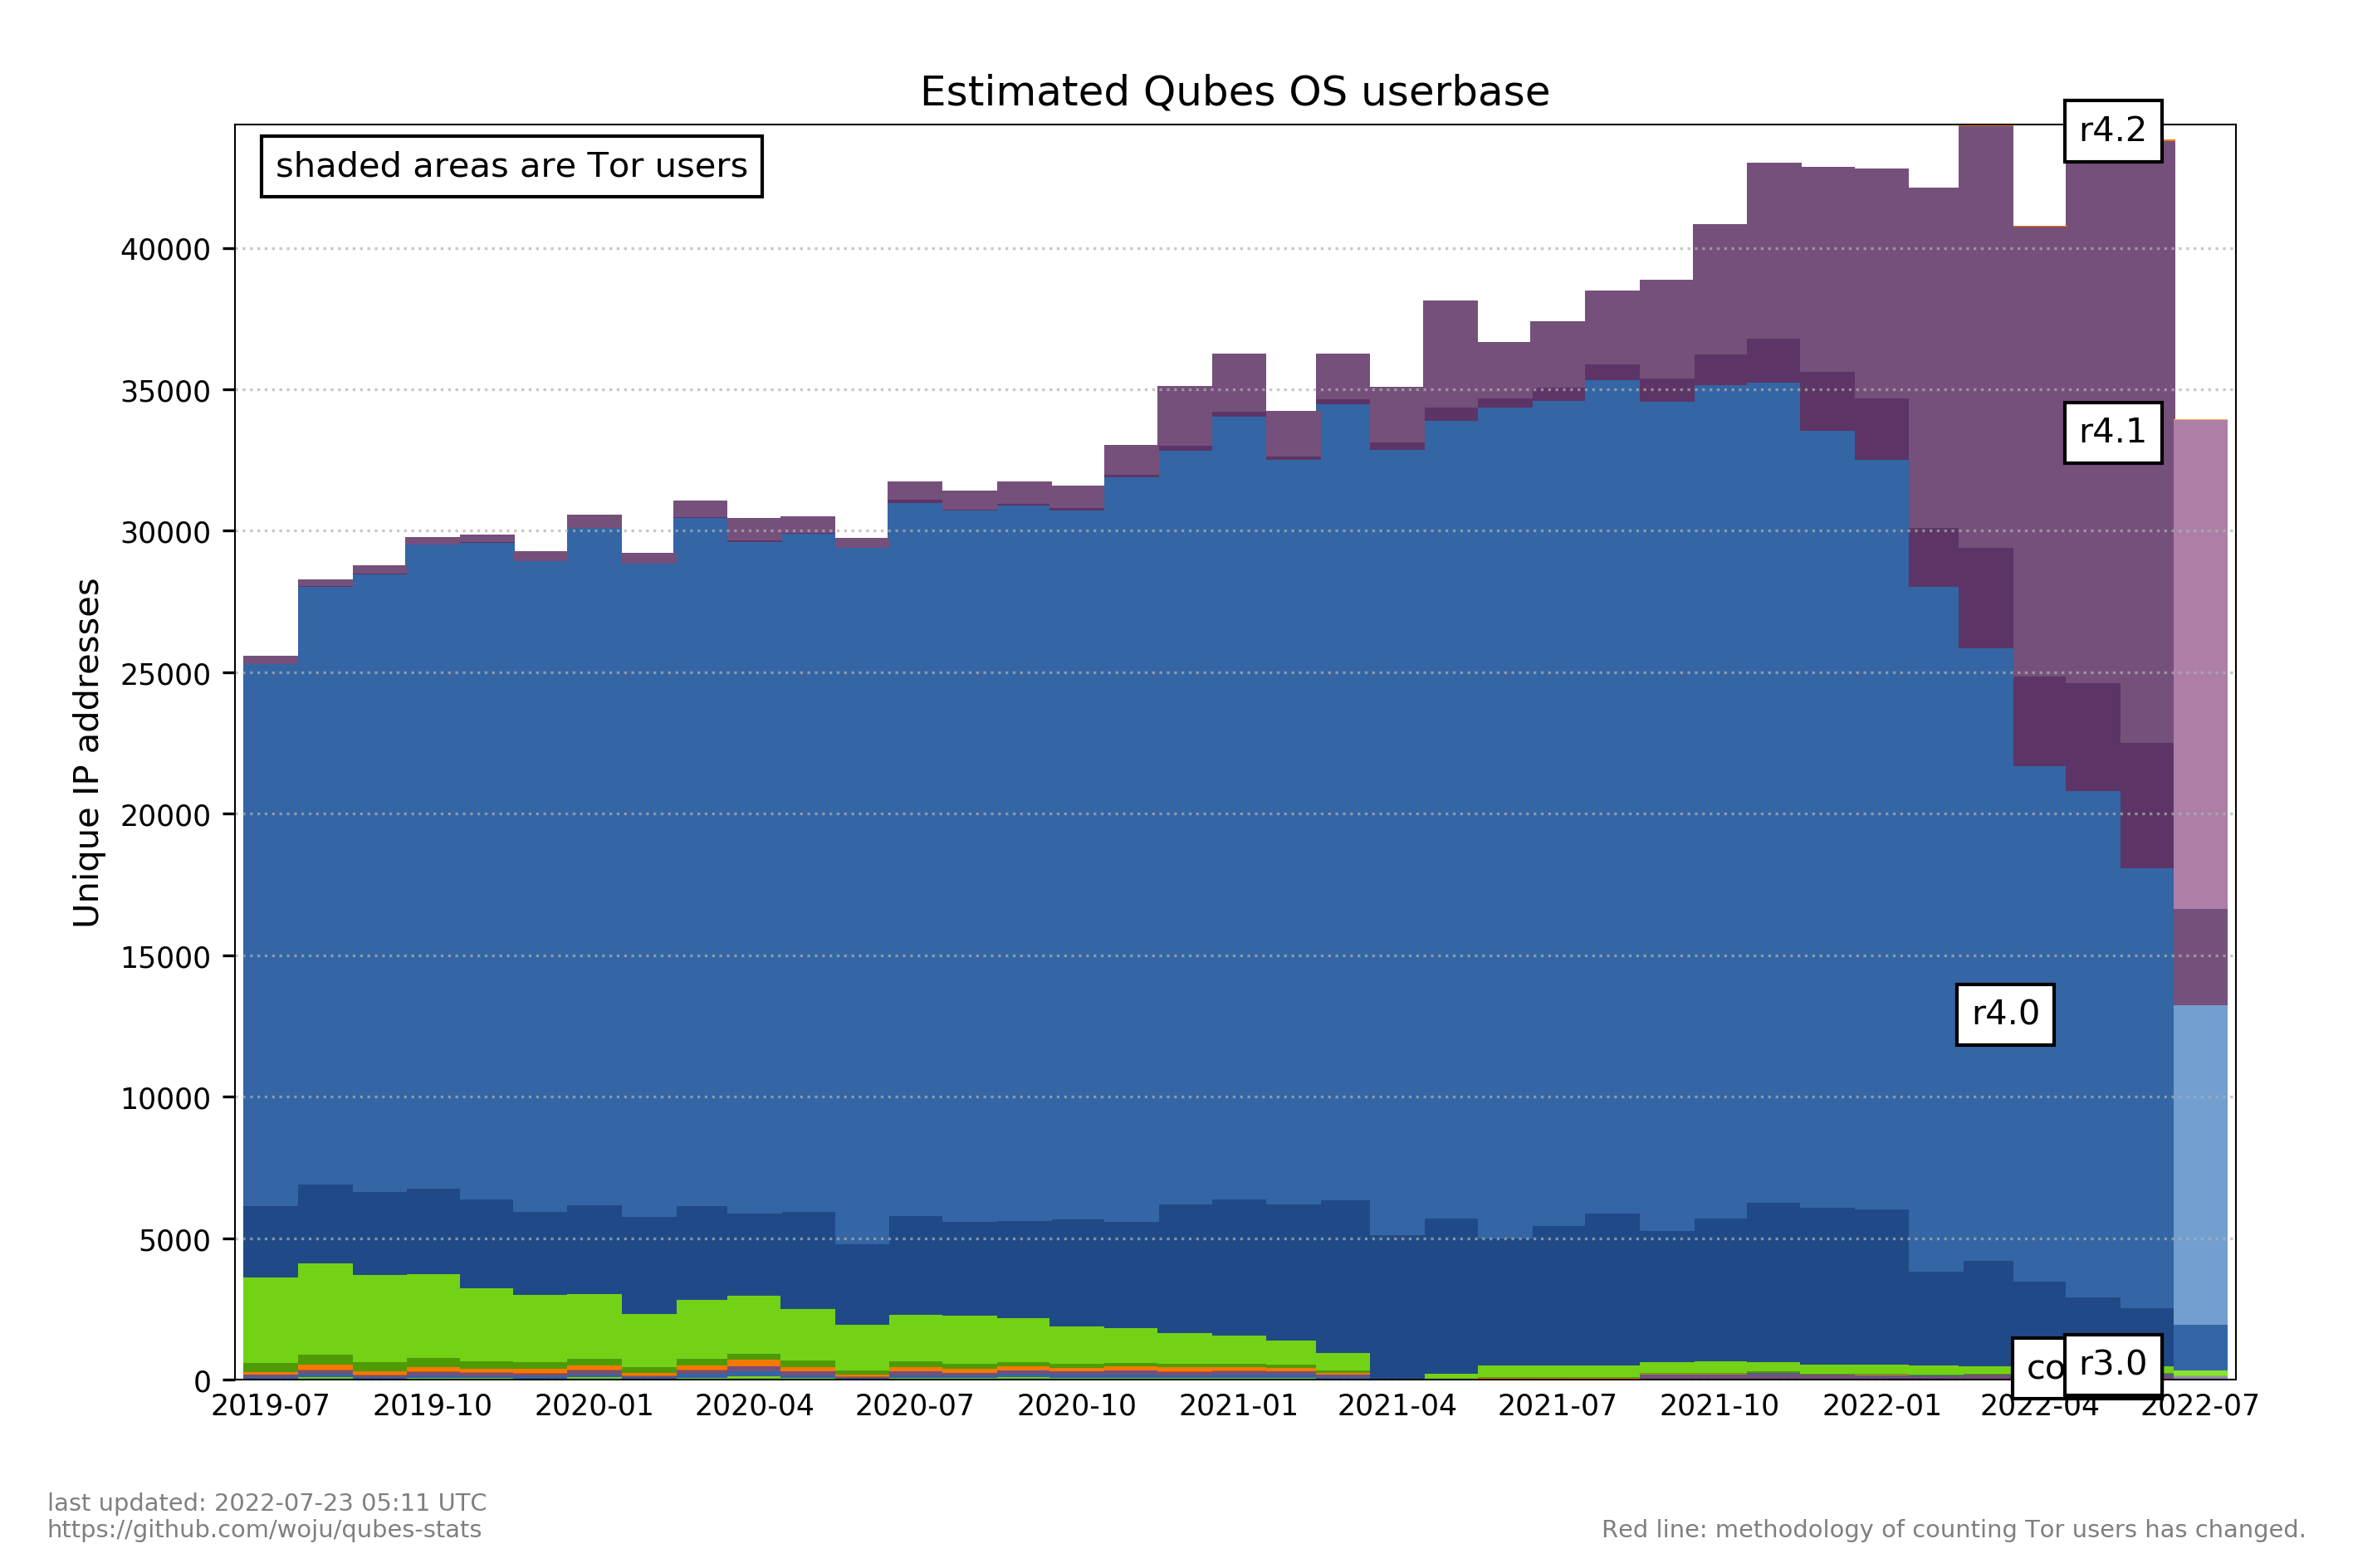 Estimated Qubes OS userbase graph